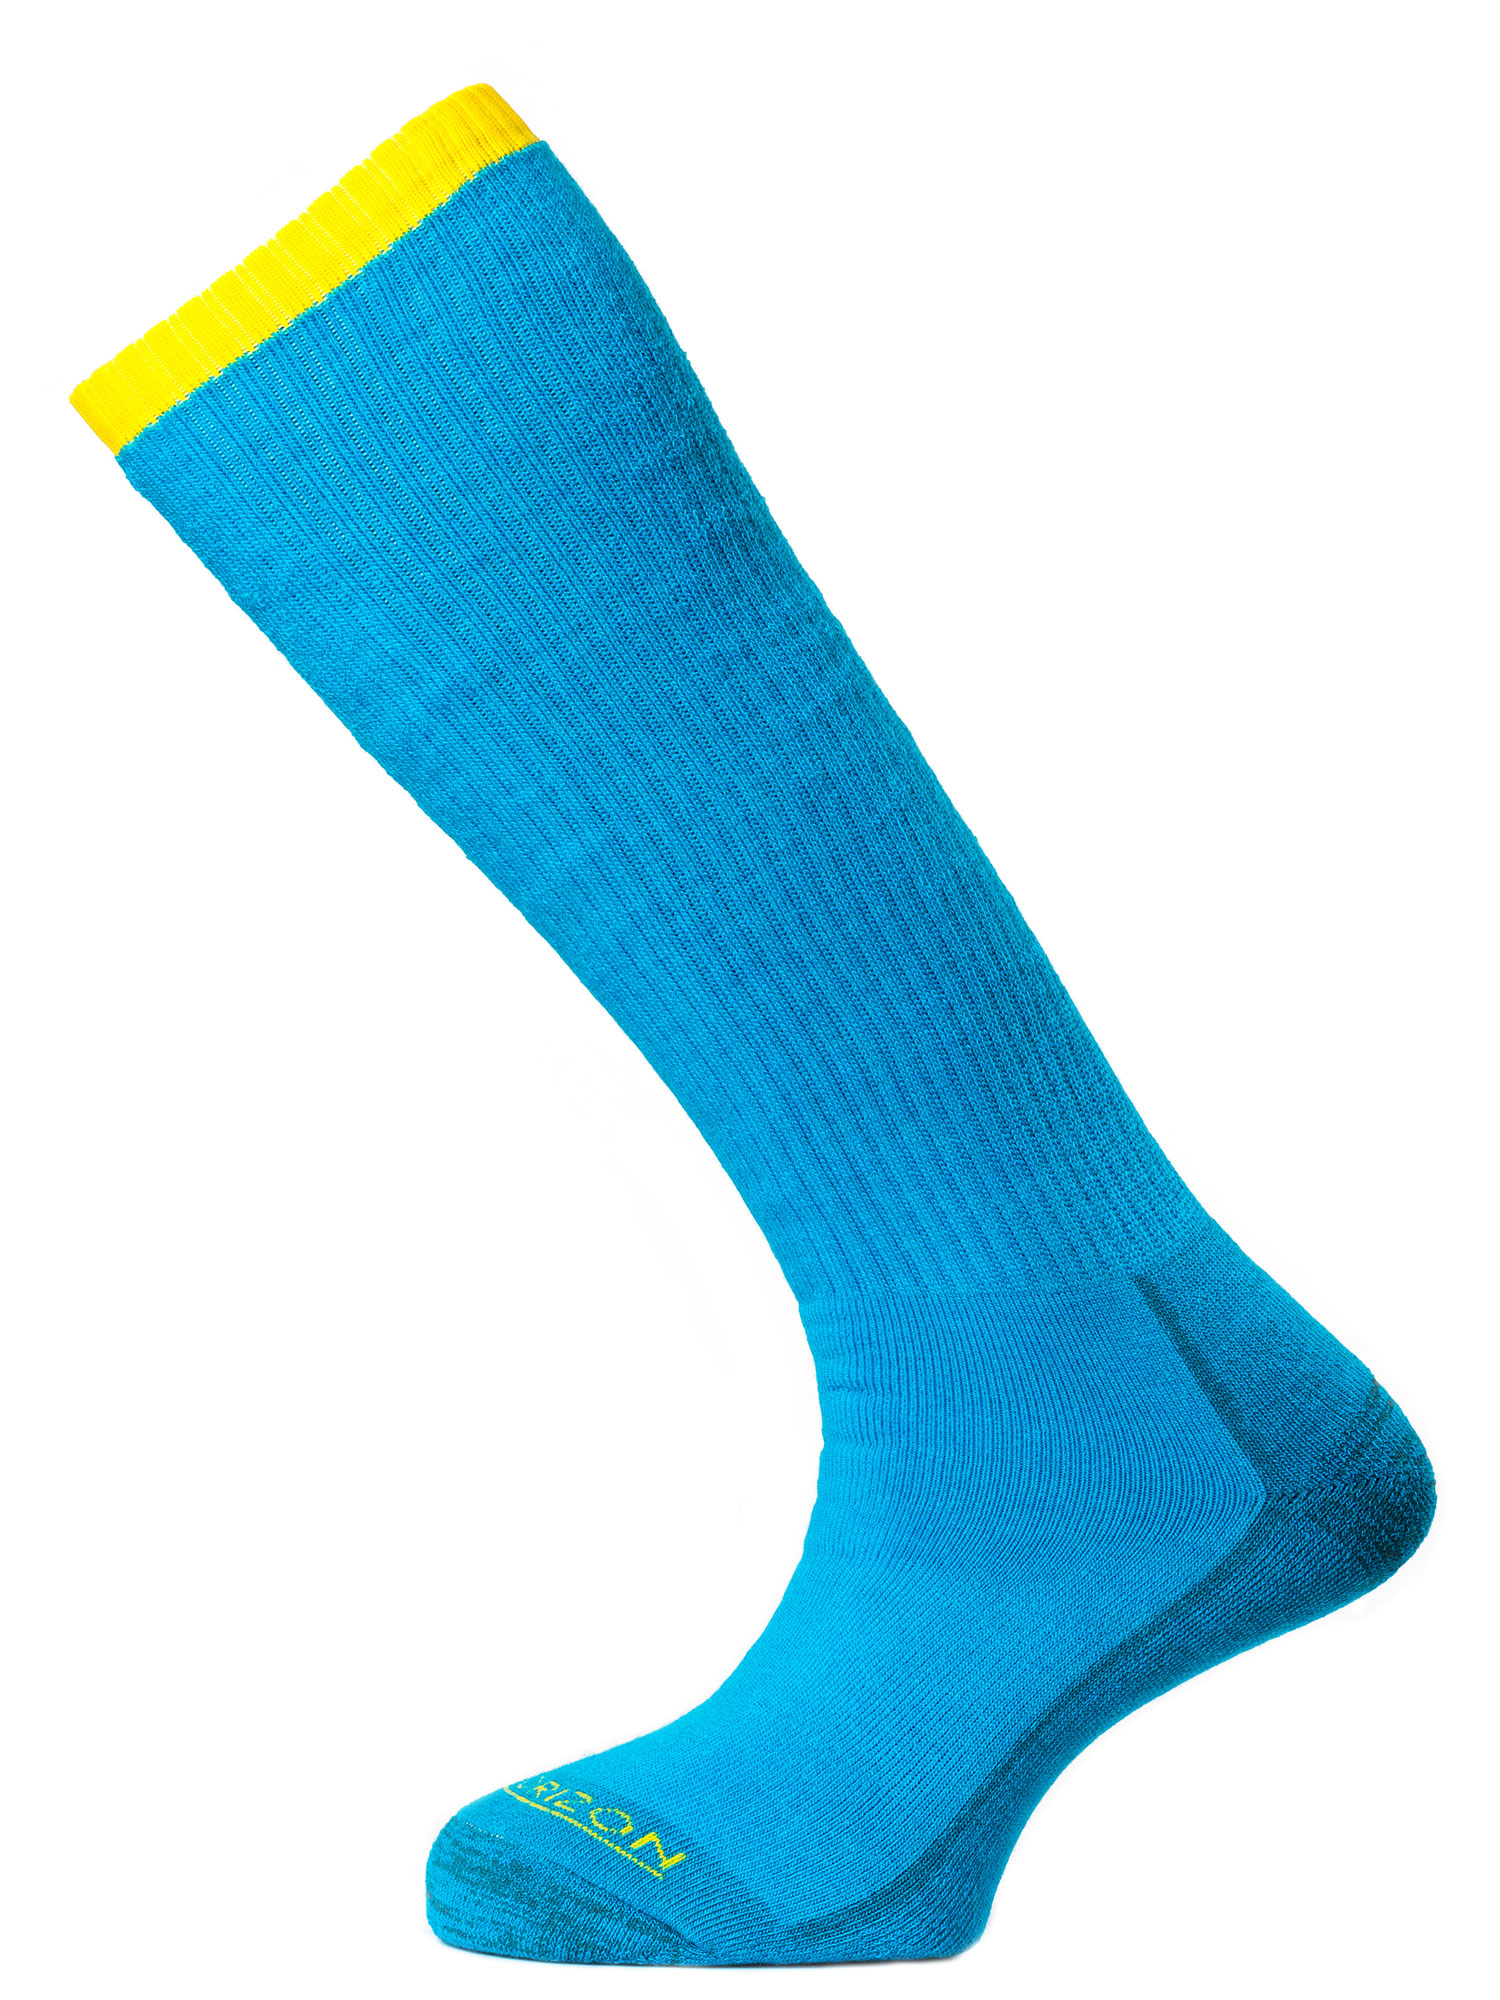 Mountaineer Turquoise Marl/Yellow